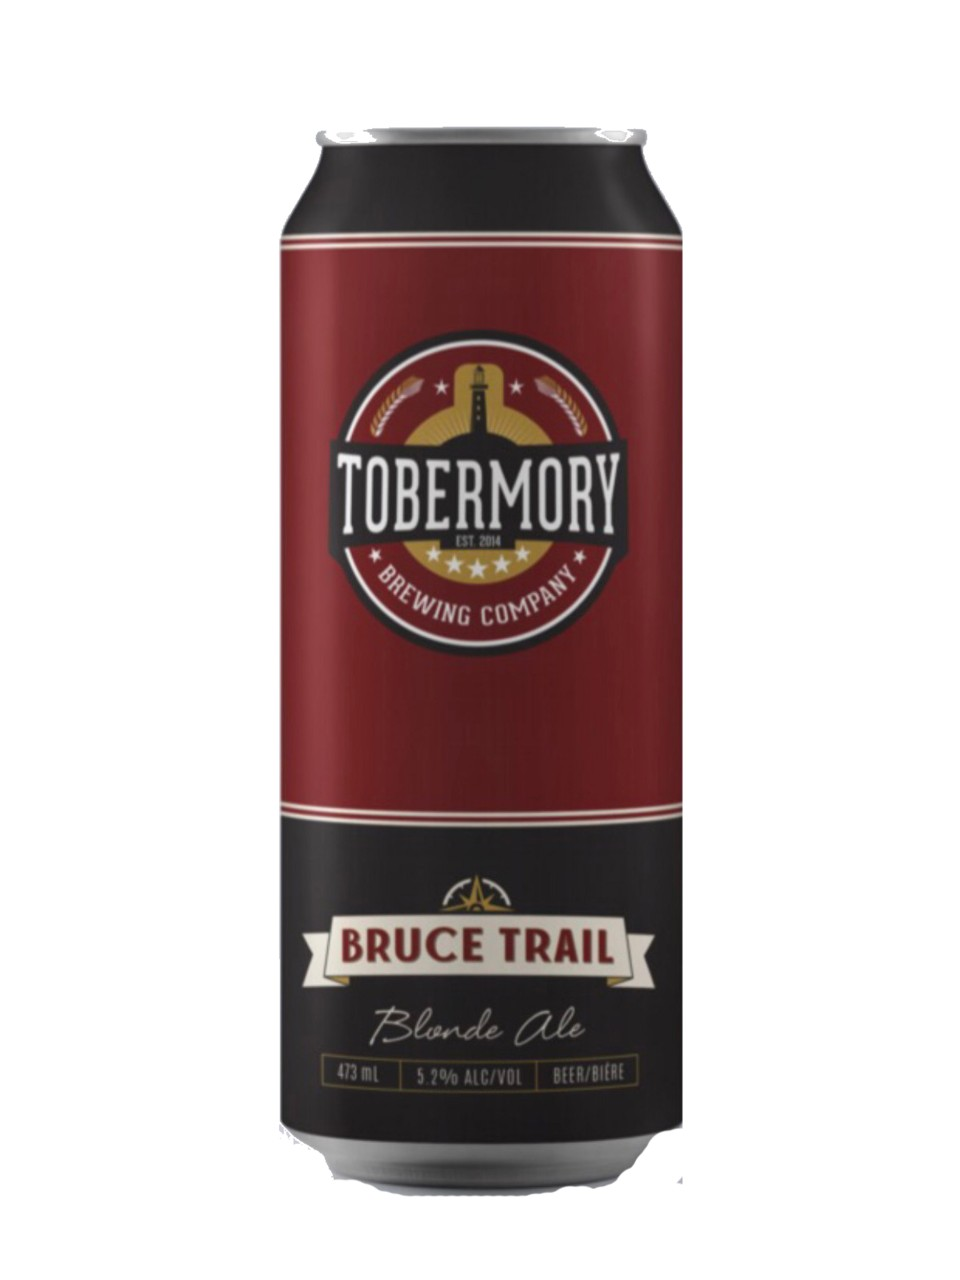 Bruce Trail Blonde Ale from LCBO